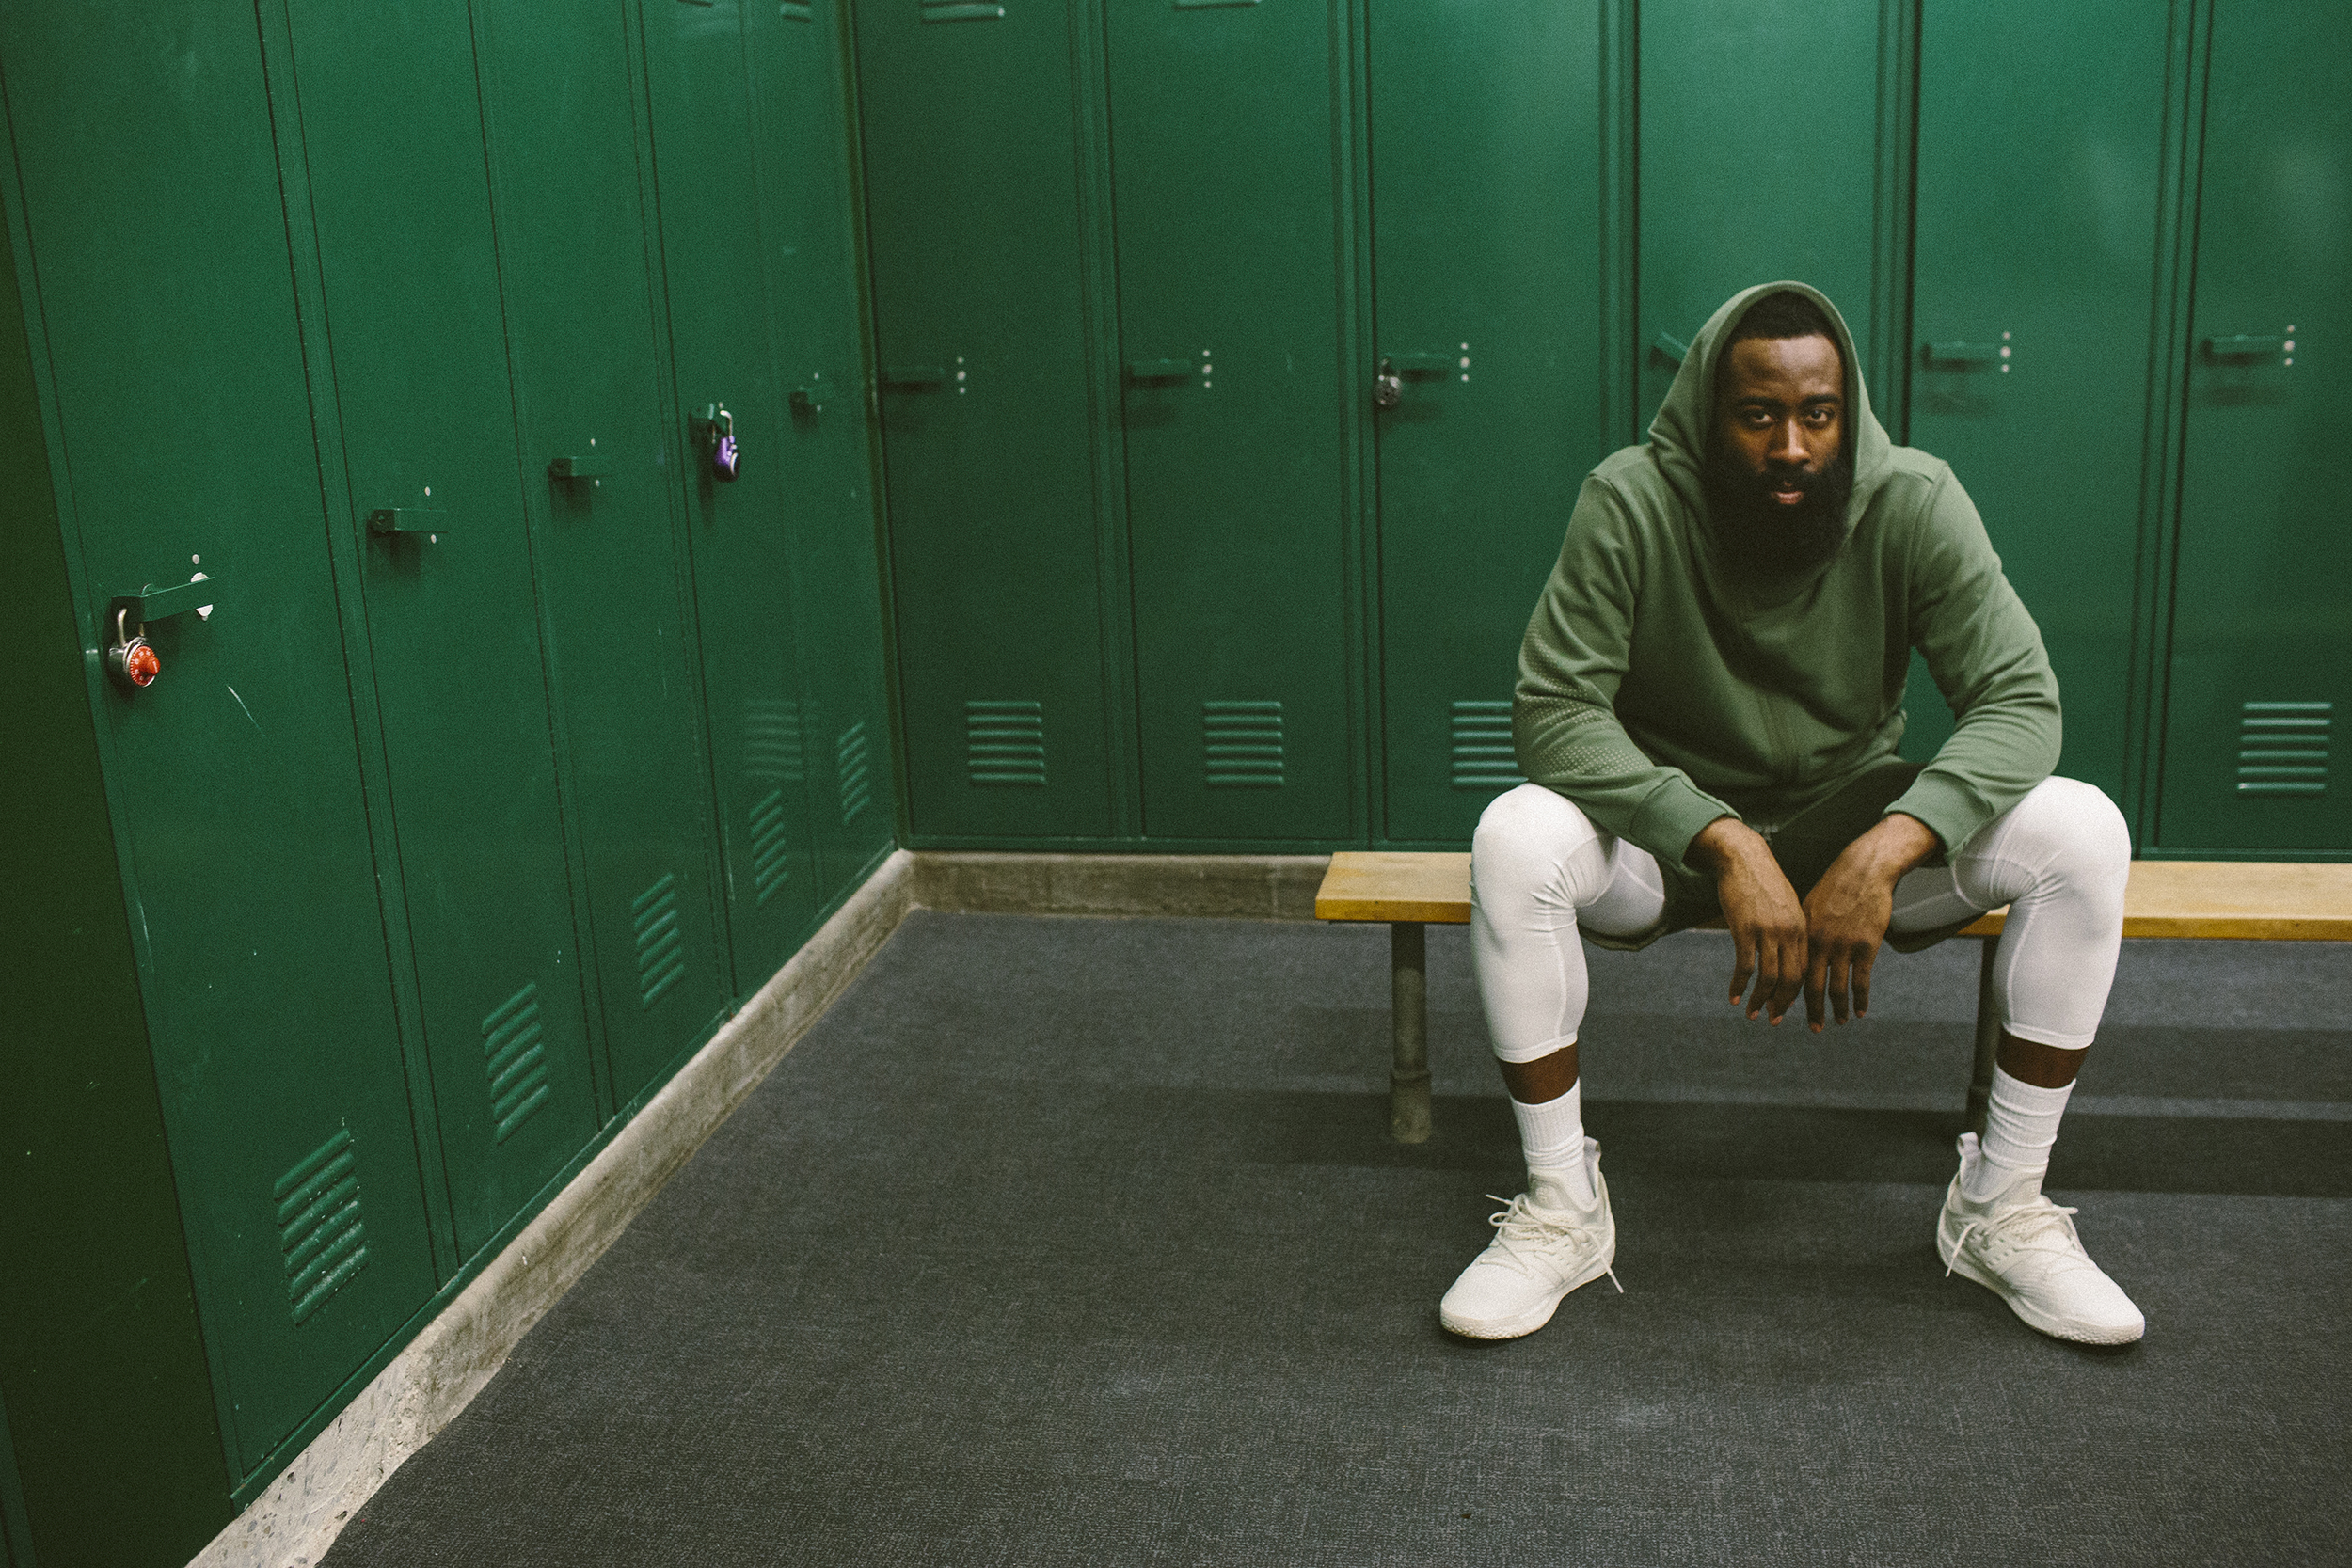 James_Harden_by_Terry_Snyder_05.jpg